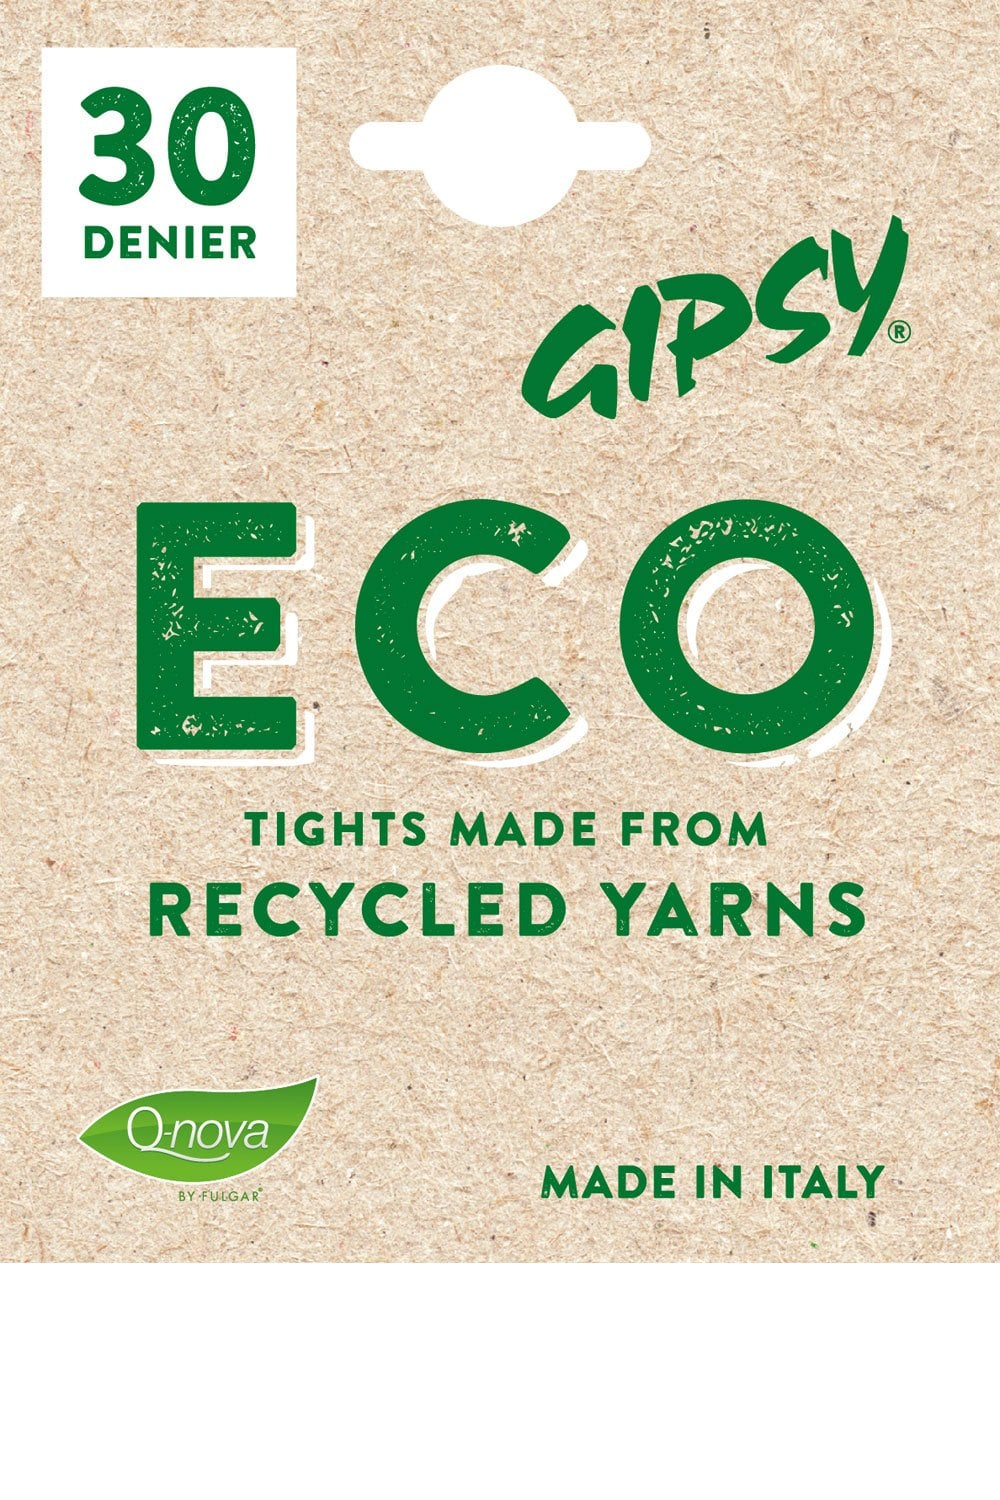 Gipsy 30 Denier ECO Tights From Recycled Yarns